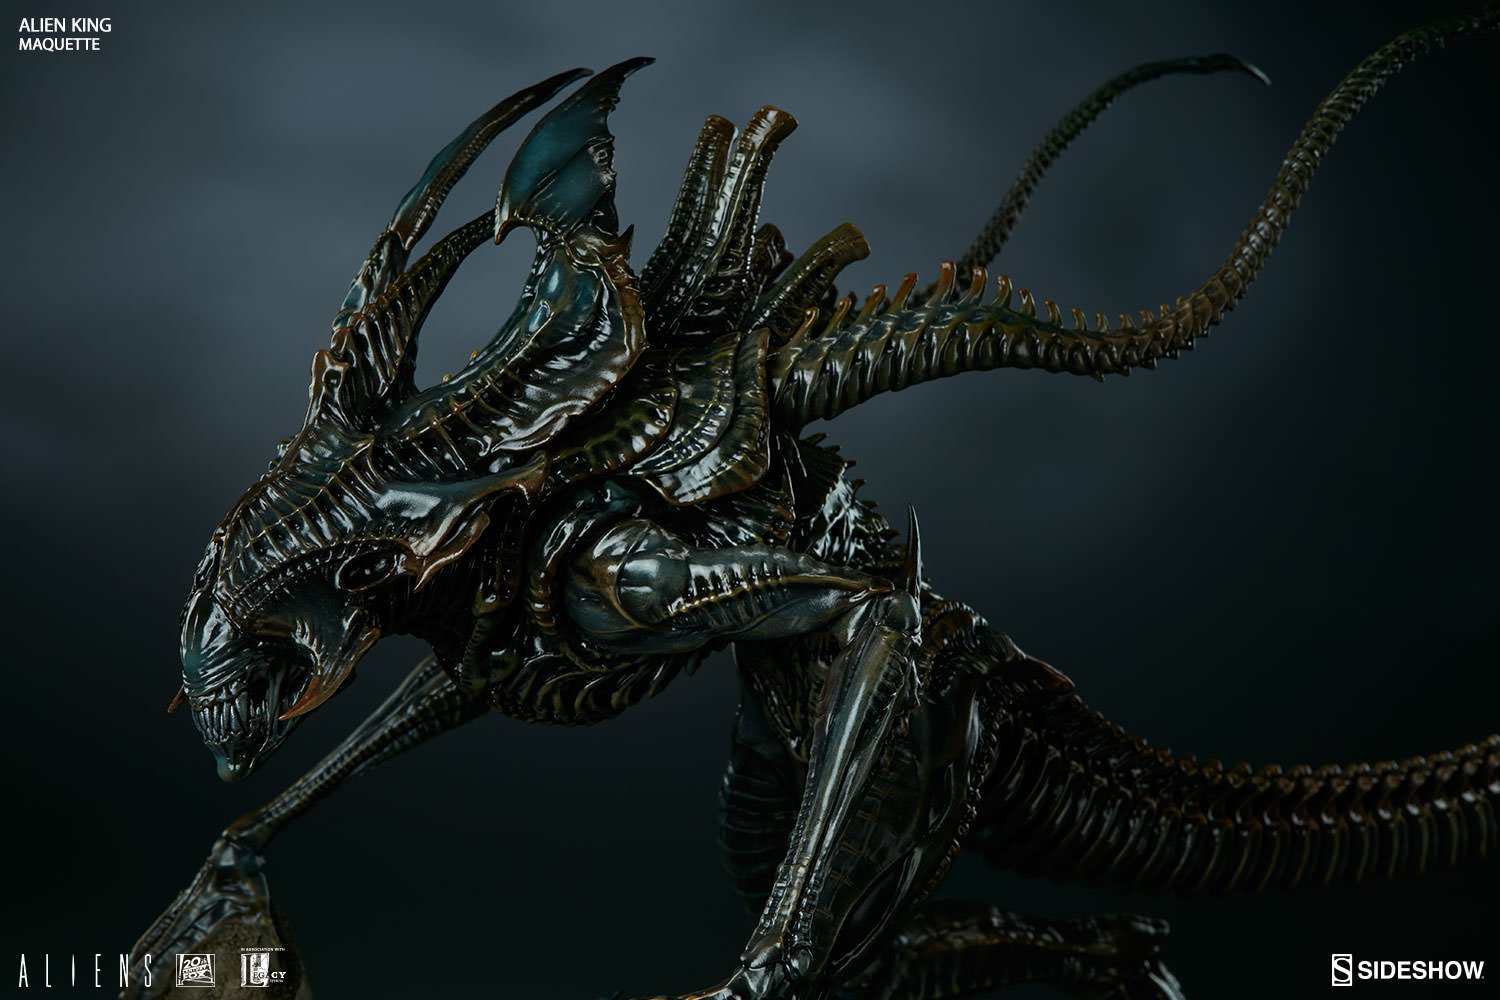 Hail to the Alien King, baby - 151.6KB